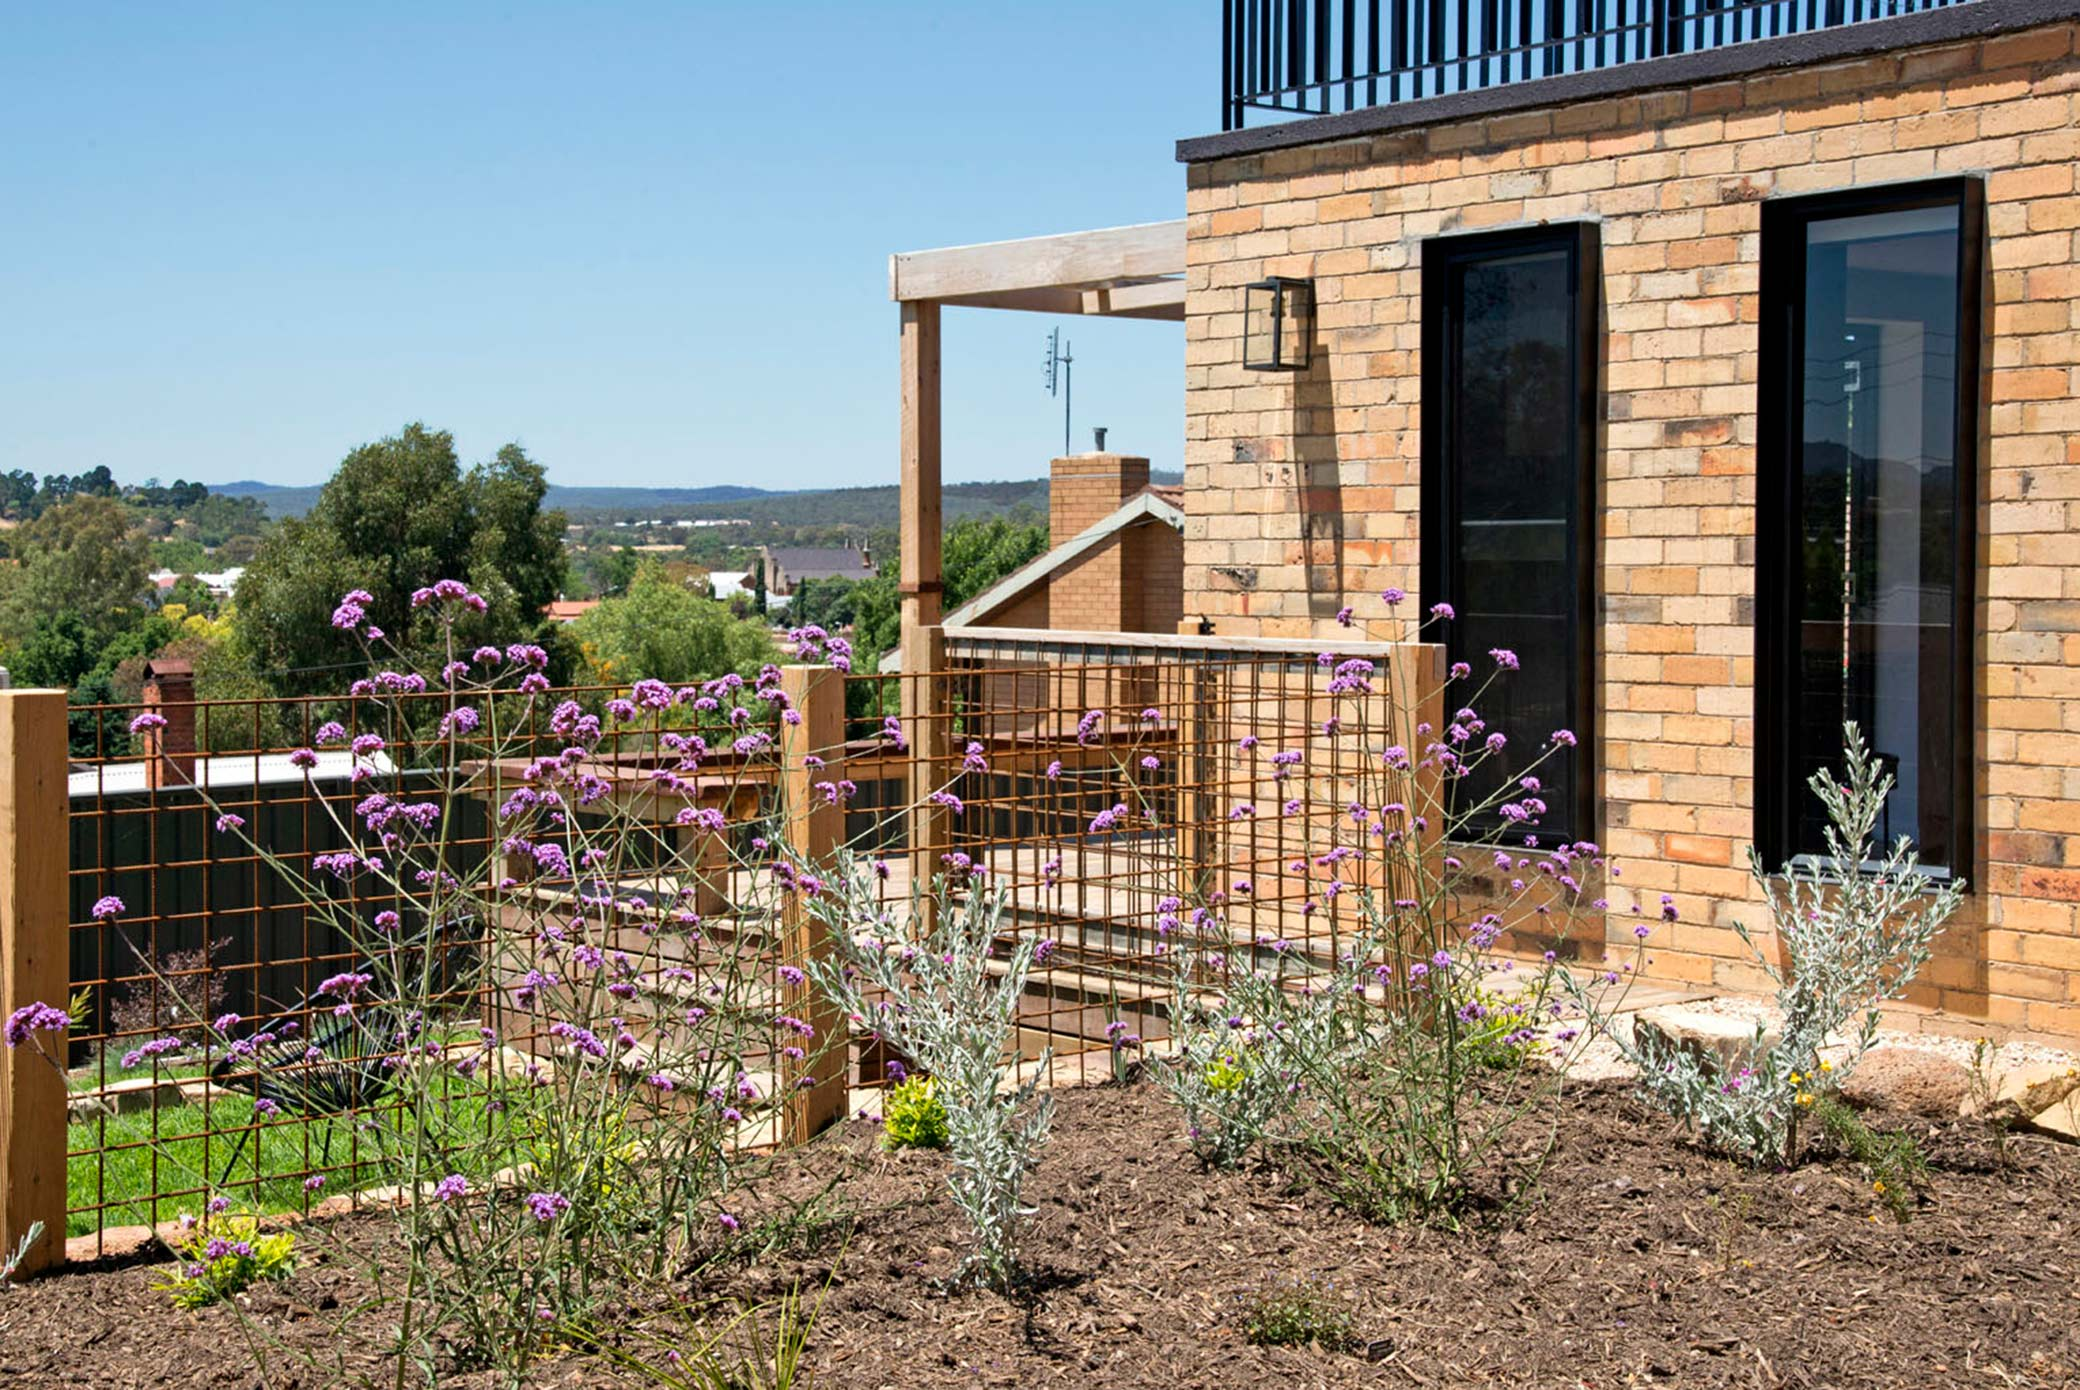 52 Views Accommodation Castlemaine Victoria Dog friendly accommodation